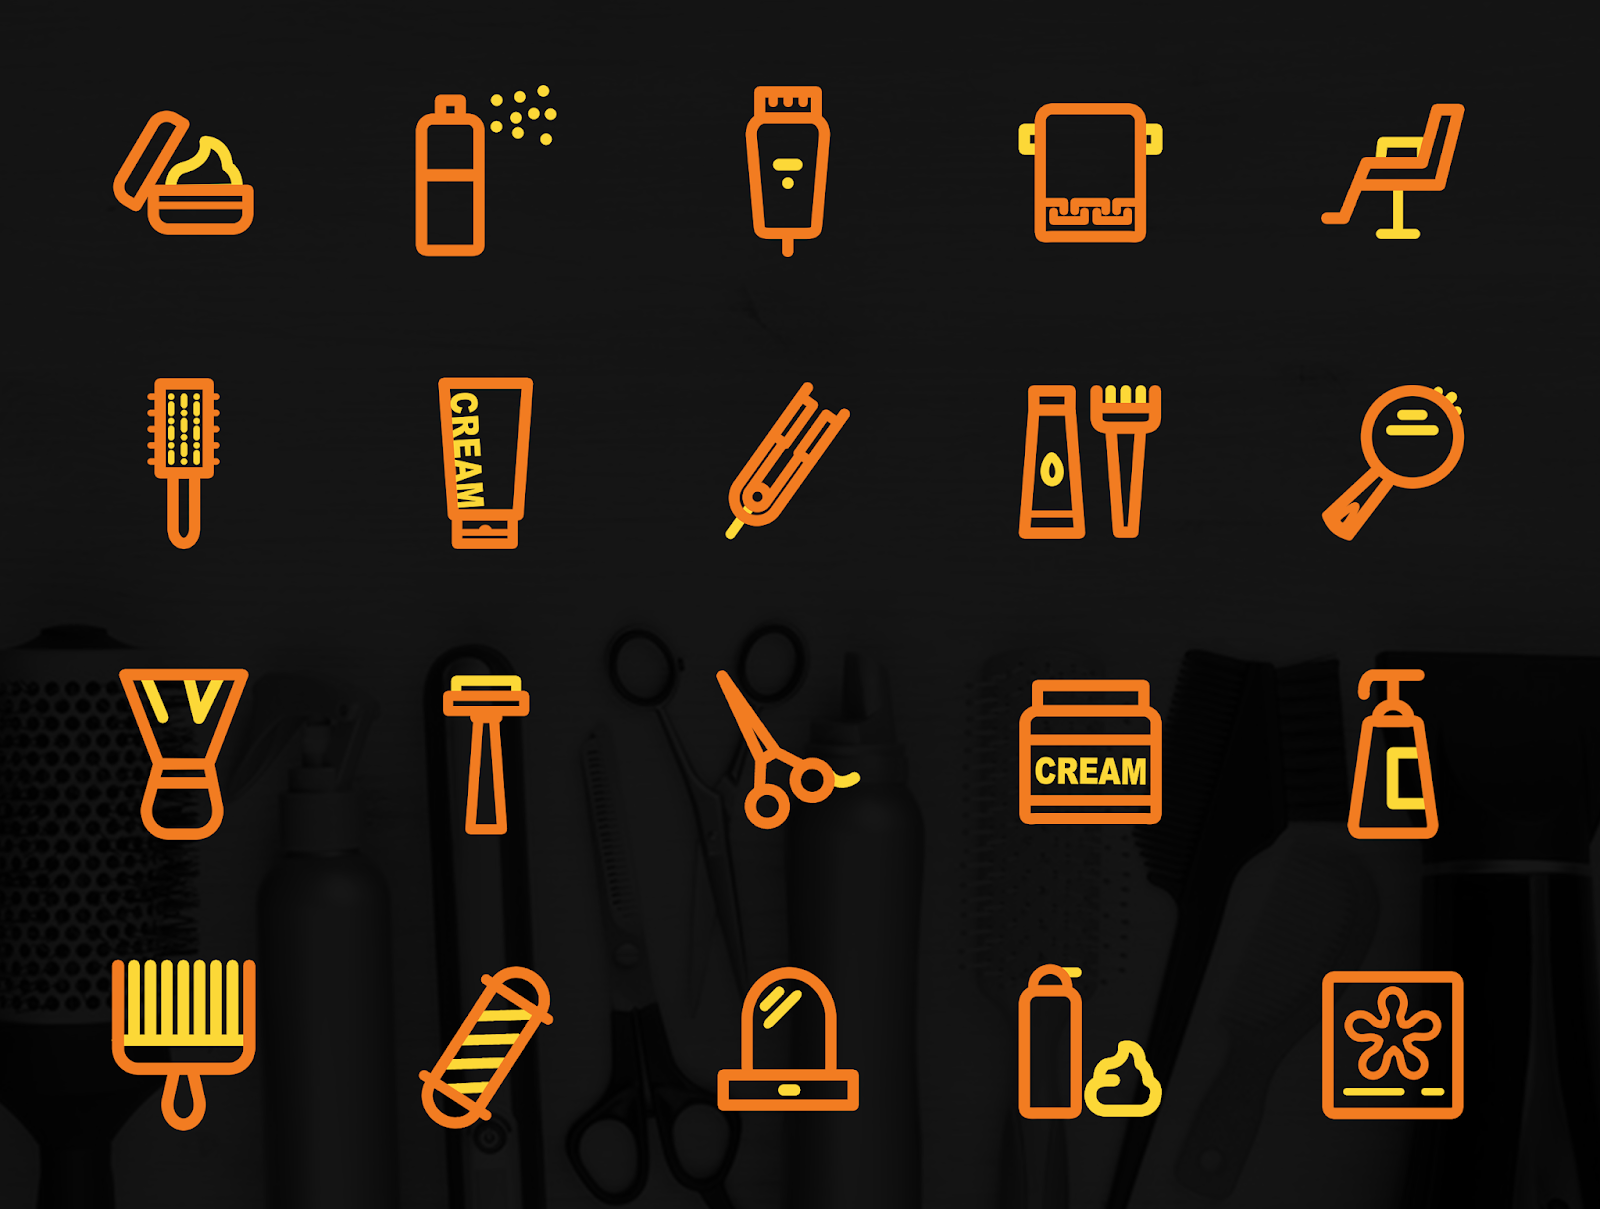 salon%2Bicon%2Bpack%2Bpsd%2Bdownload Salon Icon Pack Free PSD Download download